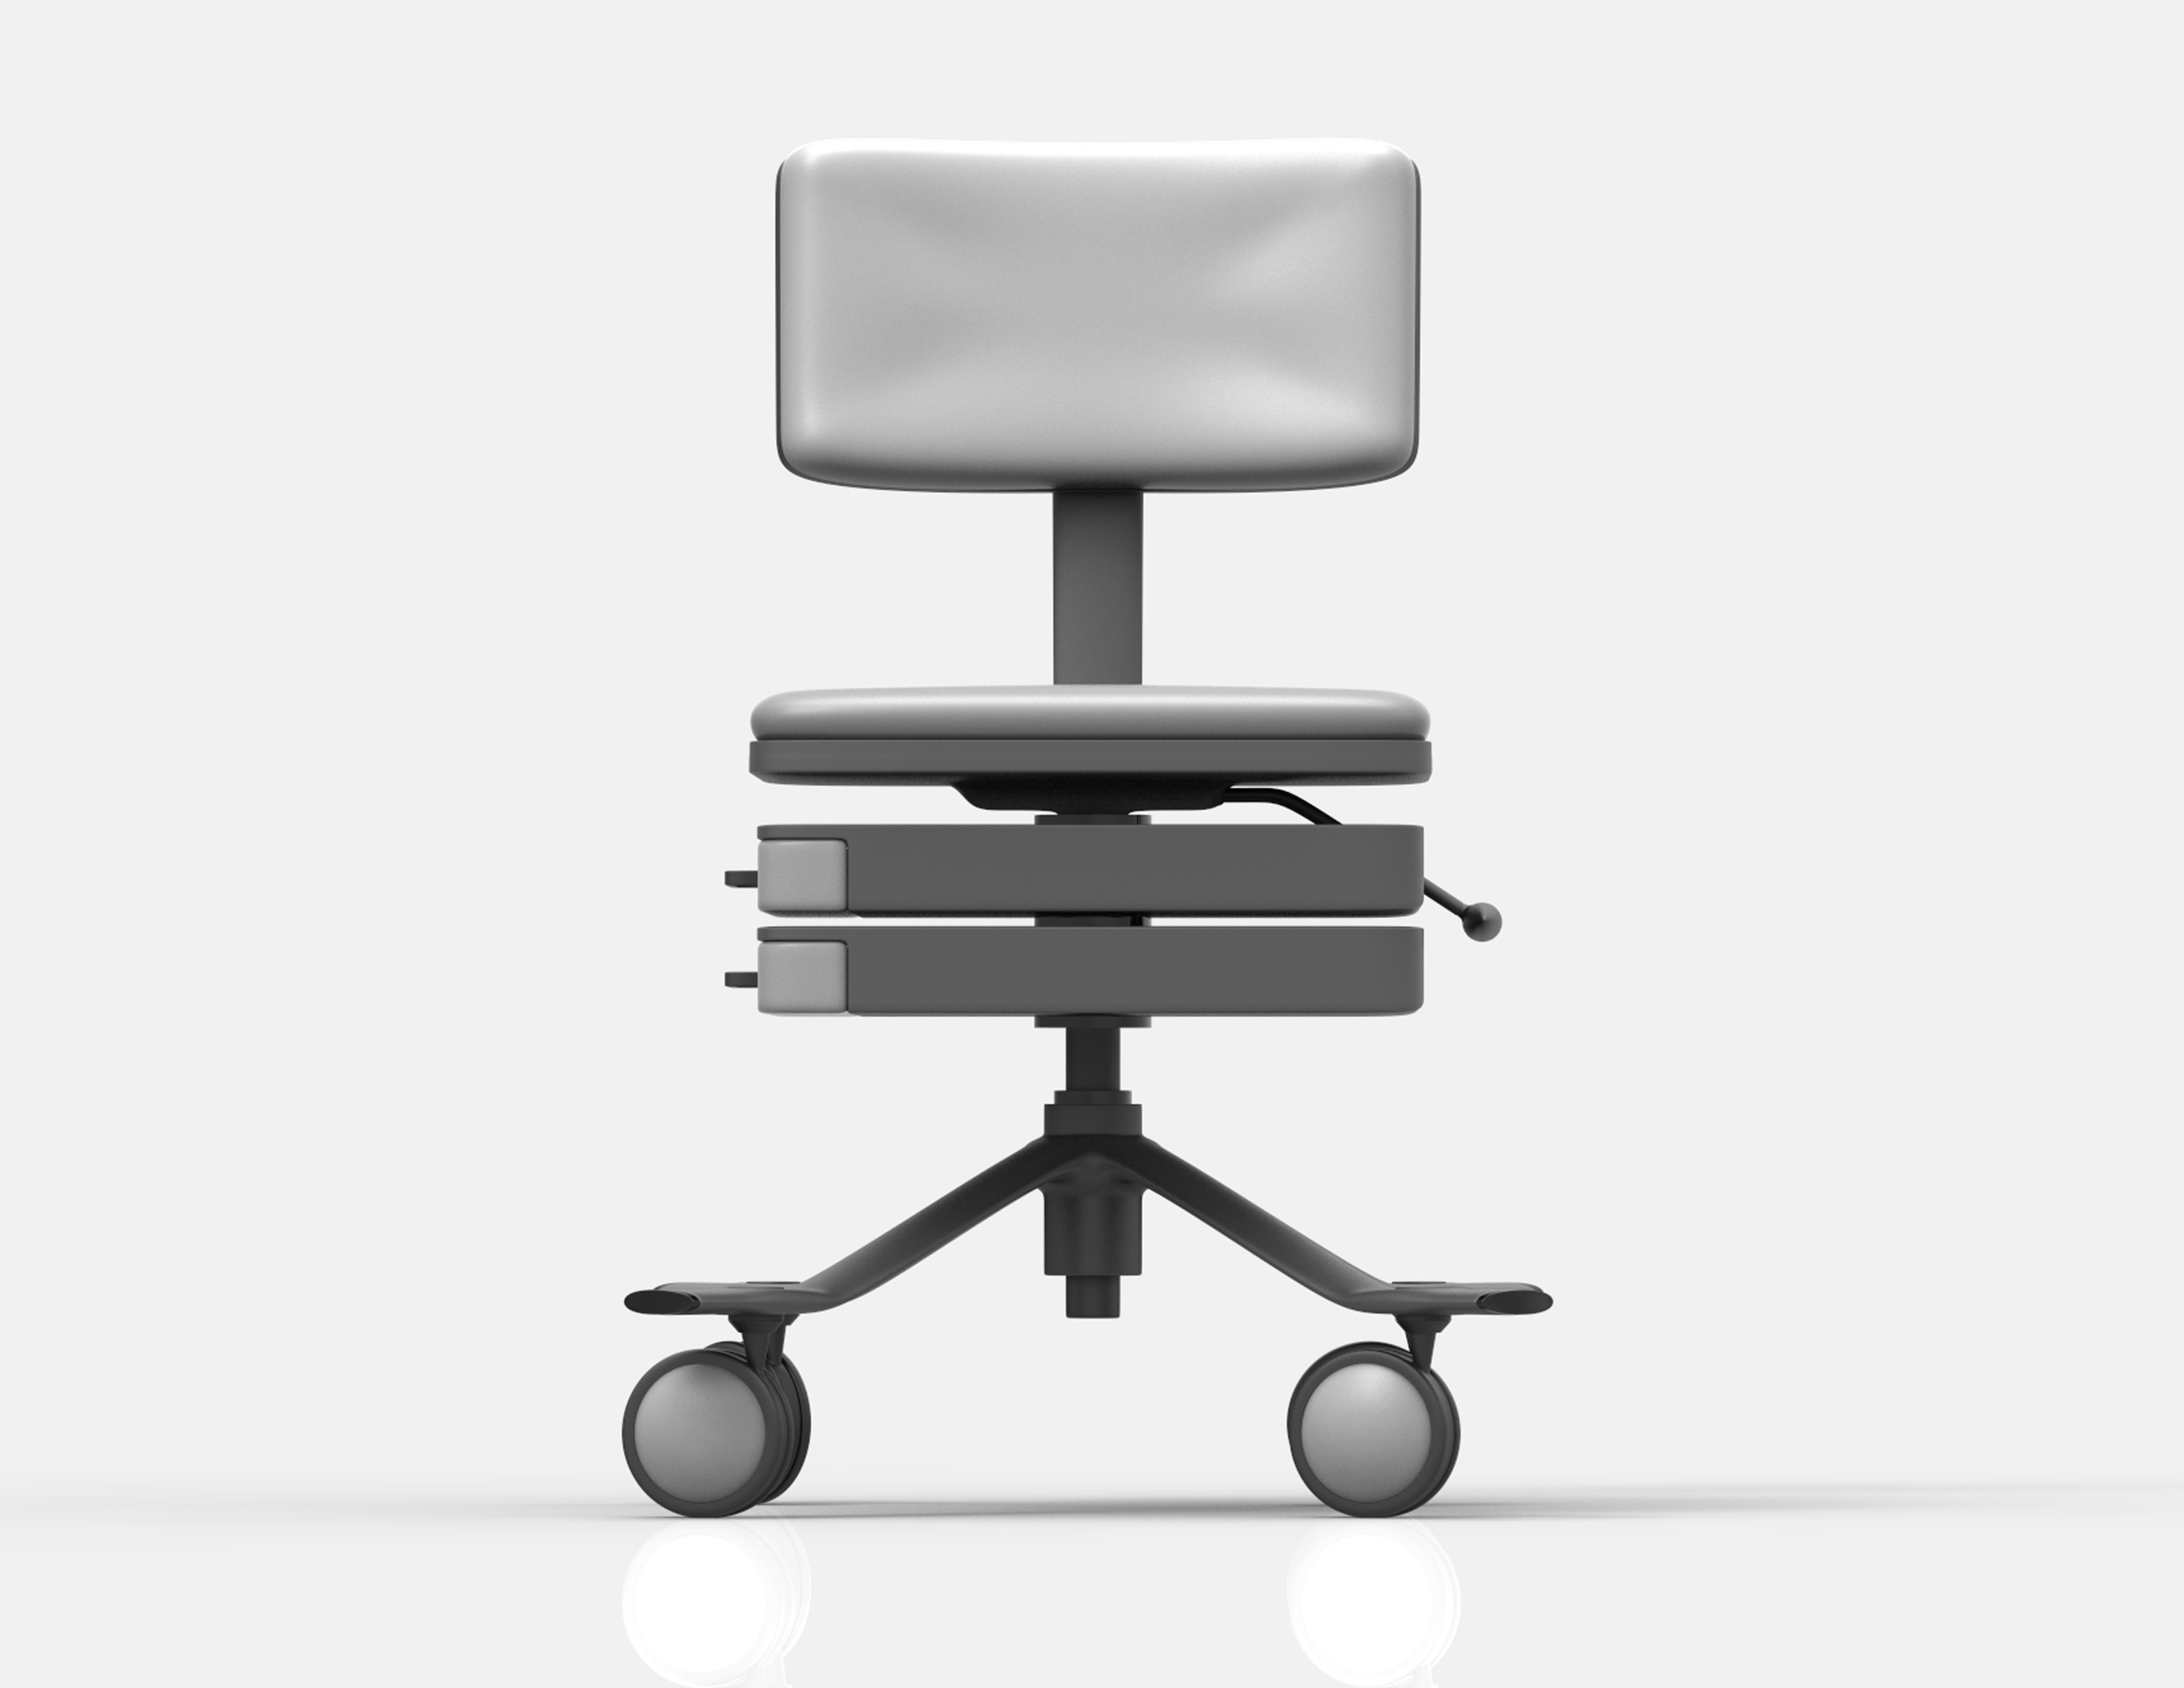 doctor chair medical design furniture arvid roach hospital future ergonomics industrial ID product comfort back innovative